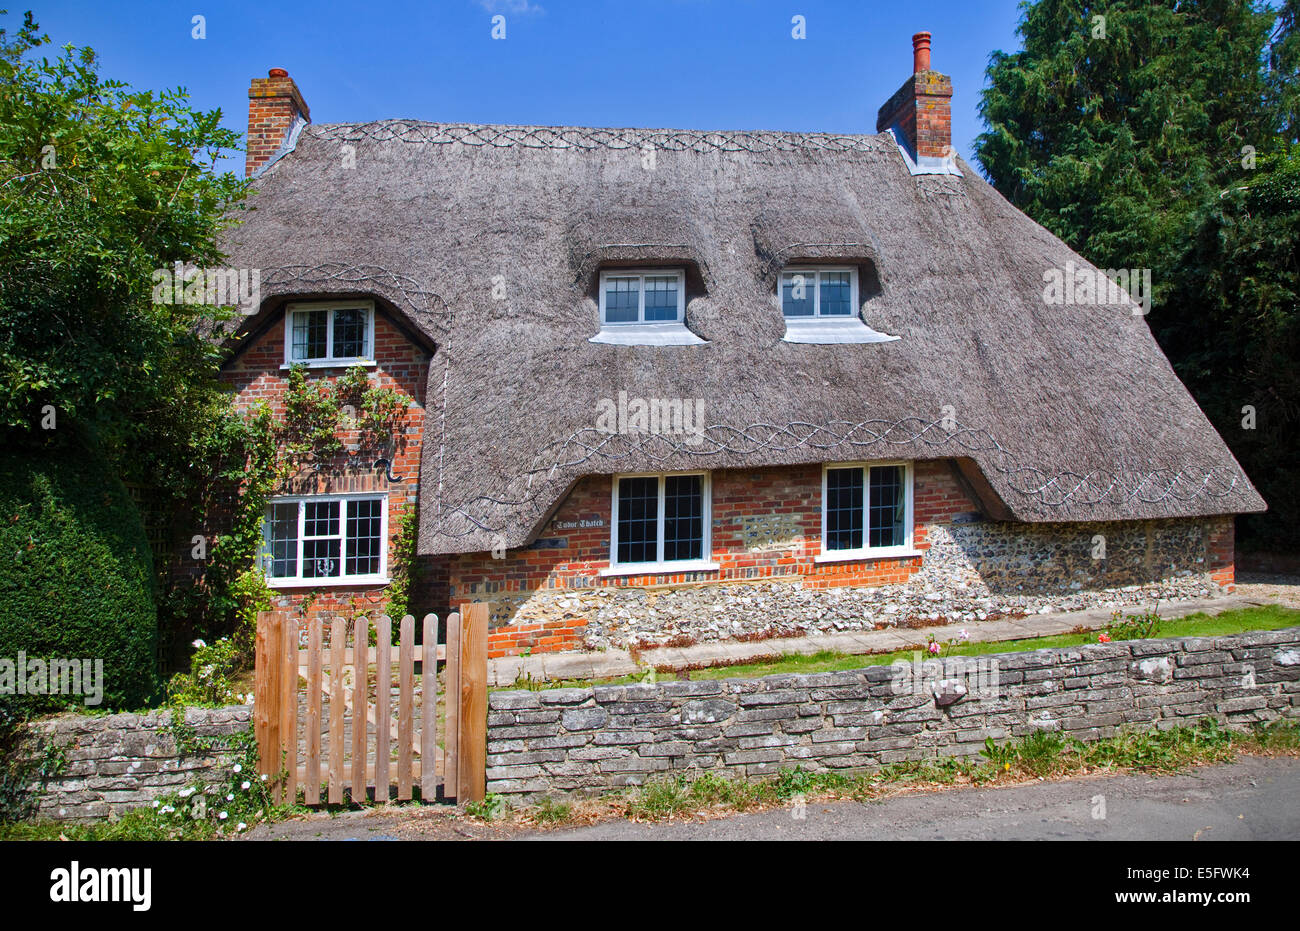 Tudor Thatch, Thatched Cottage, Easton, Hampshire, England - Stock Image